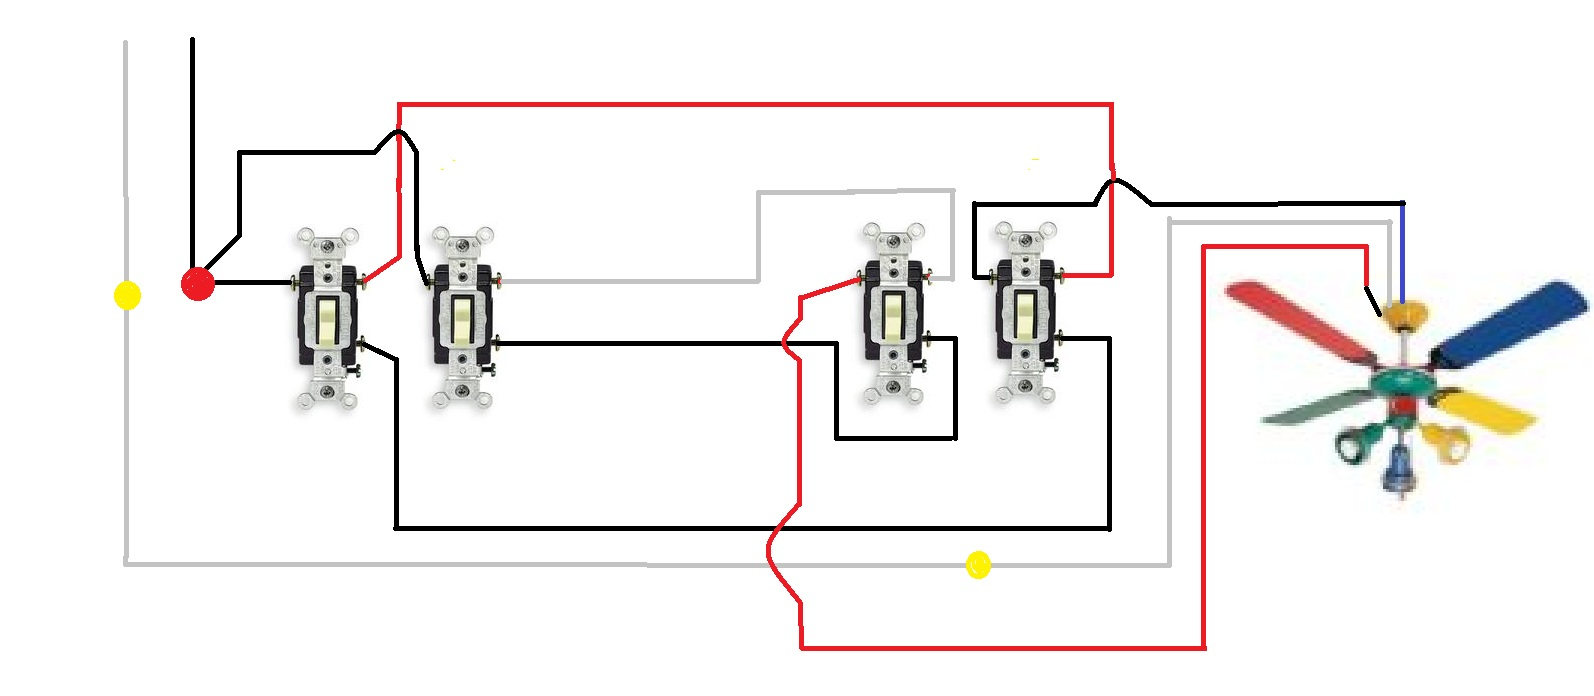 wiring diagram for fan light switch wiring image wiring diagram for ceiling light and switch wiring on wiring diagram for fan light